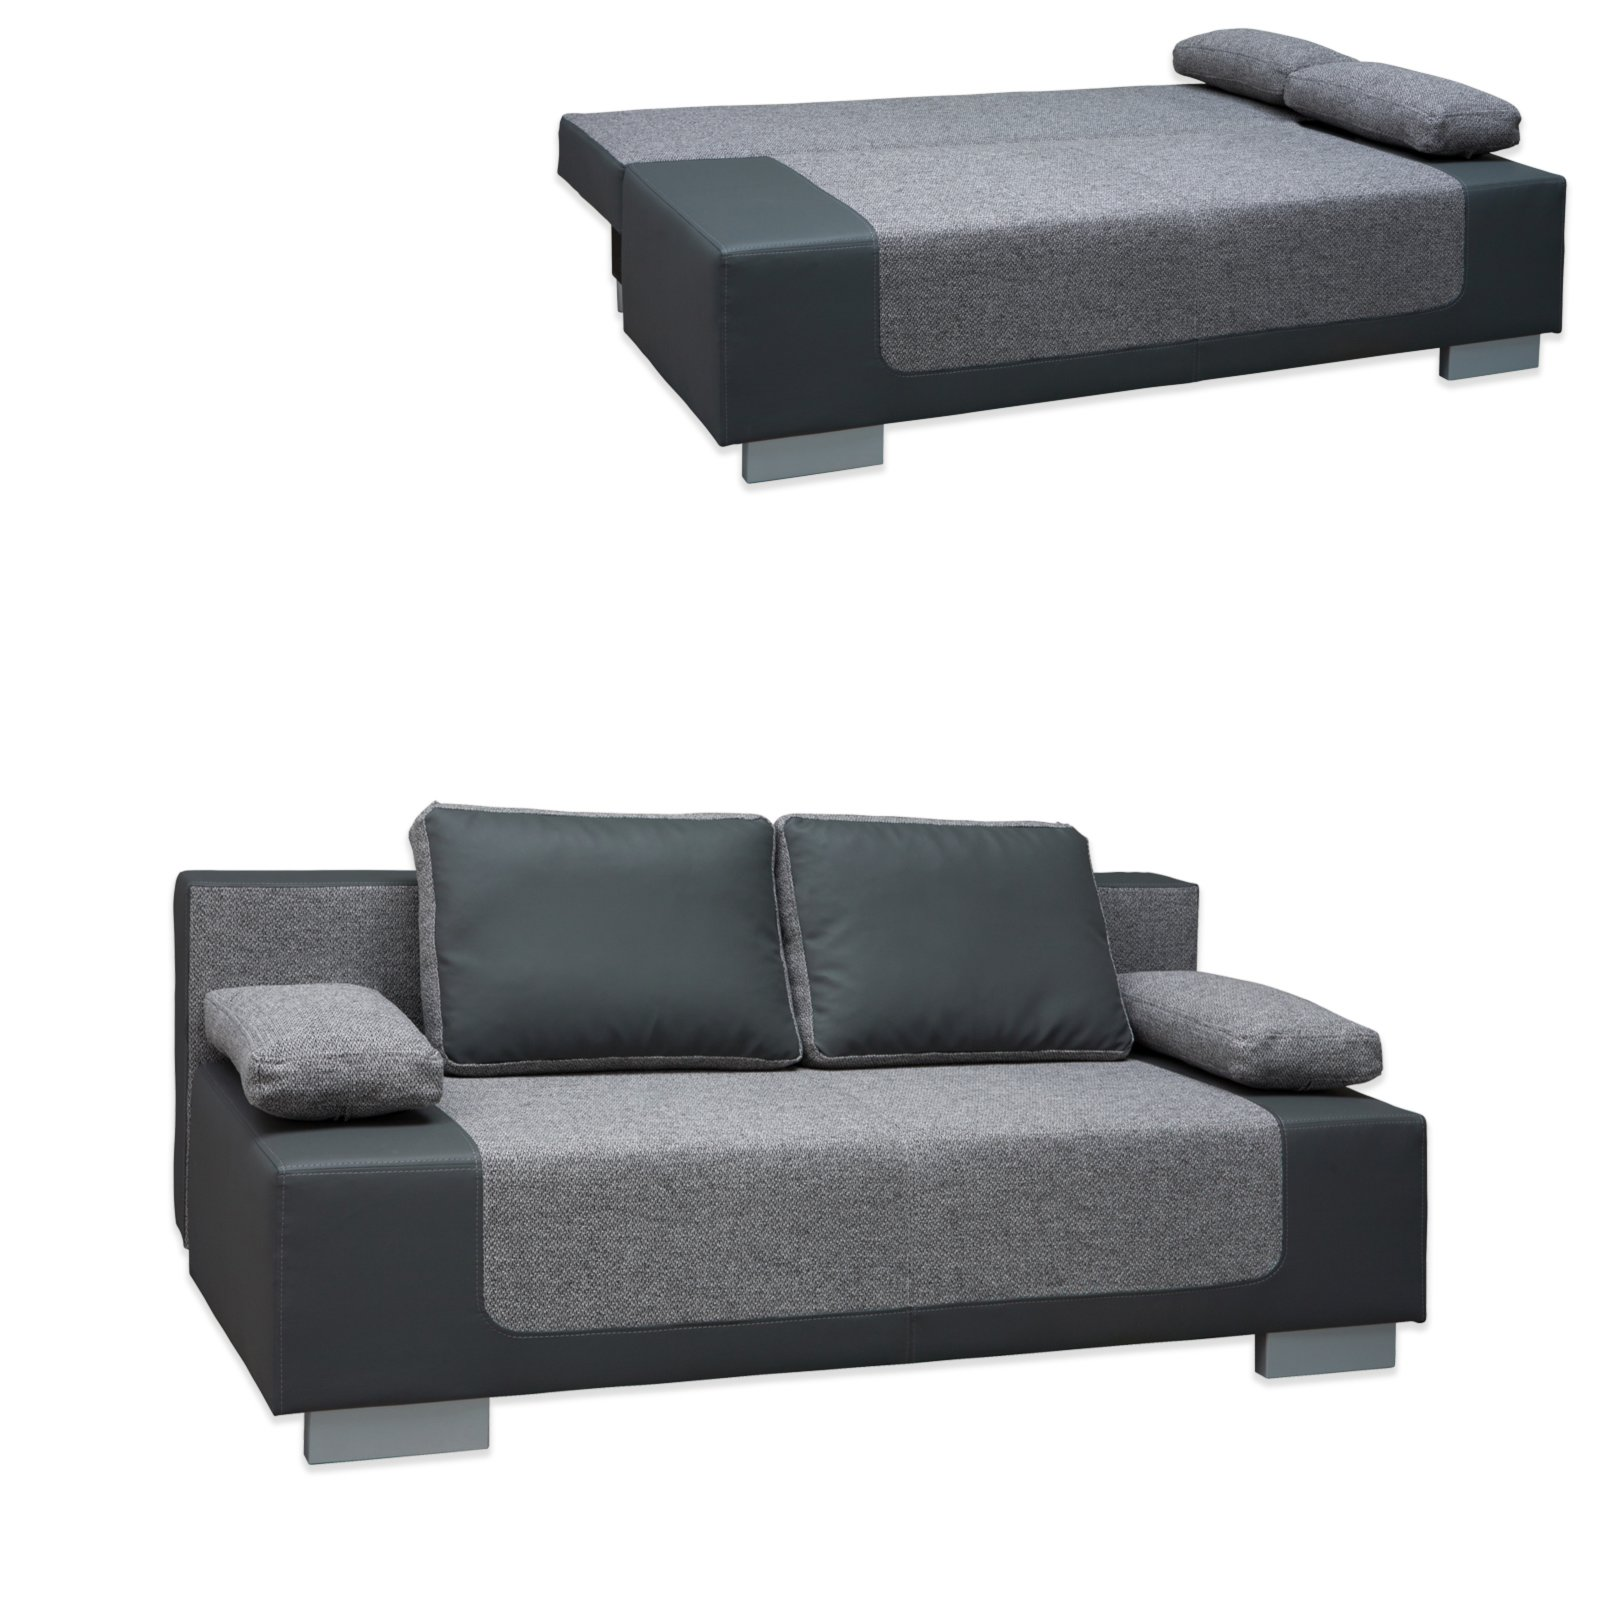 graues schlafsofa elegant sofa grau schlafsofa bettsofa klappsofa couch aidan with graues. Black Bedroom Furniture Sets. Home Design Ideas